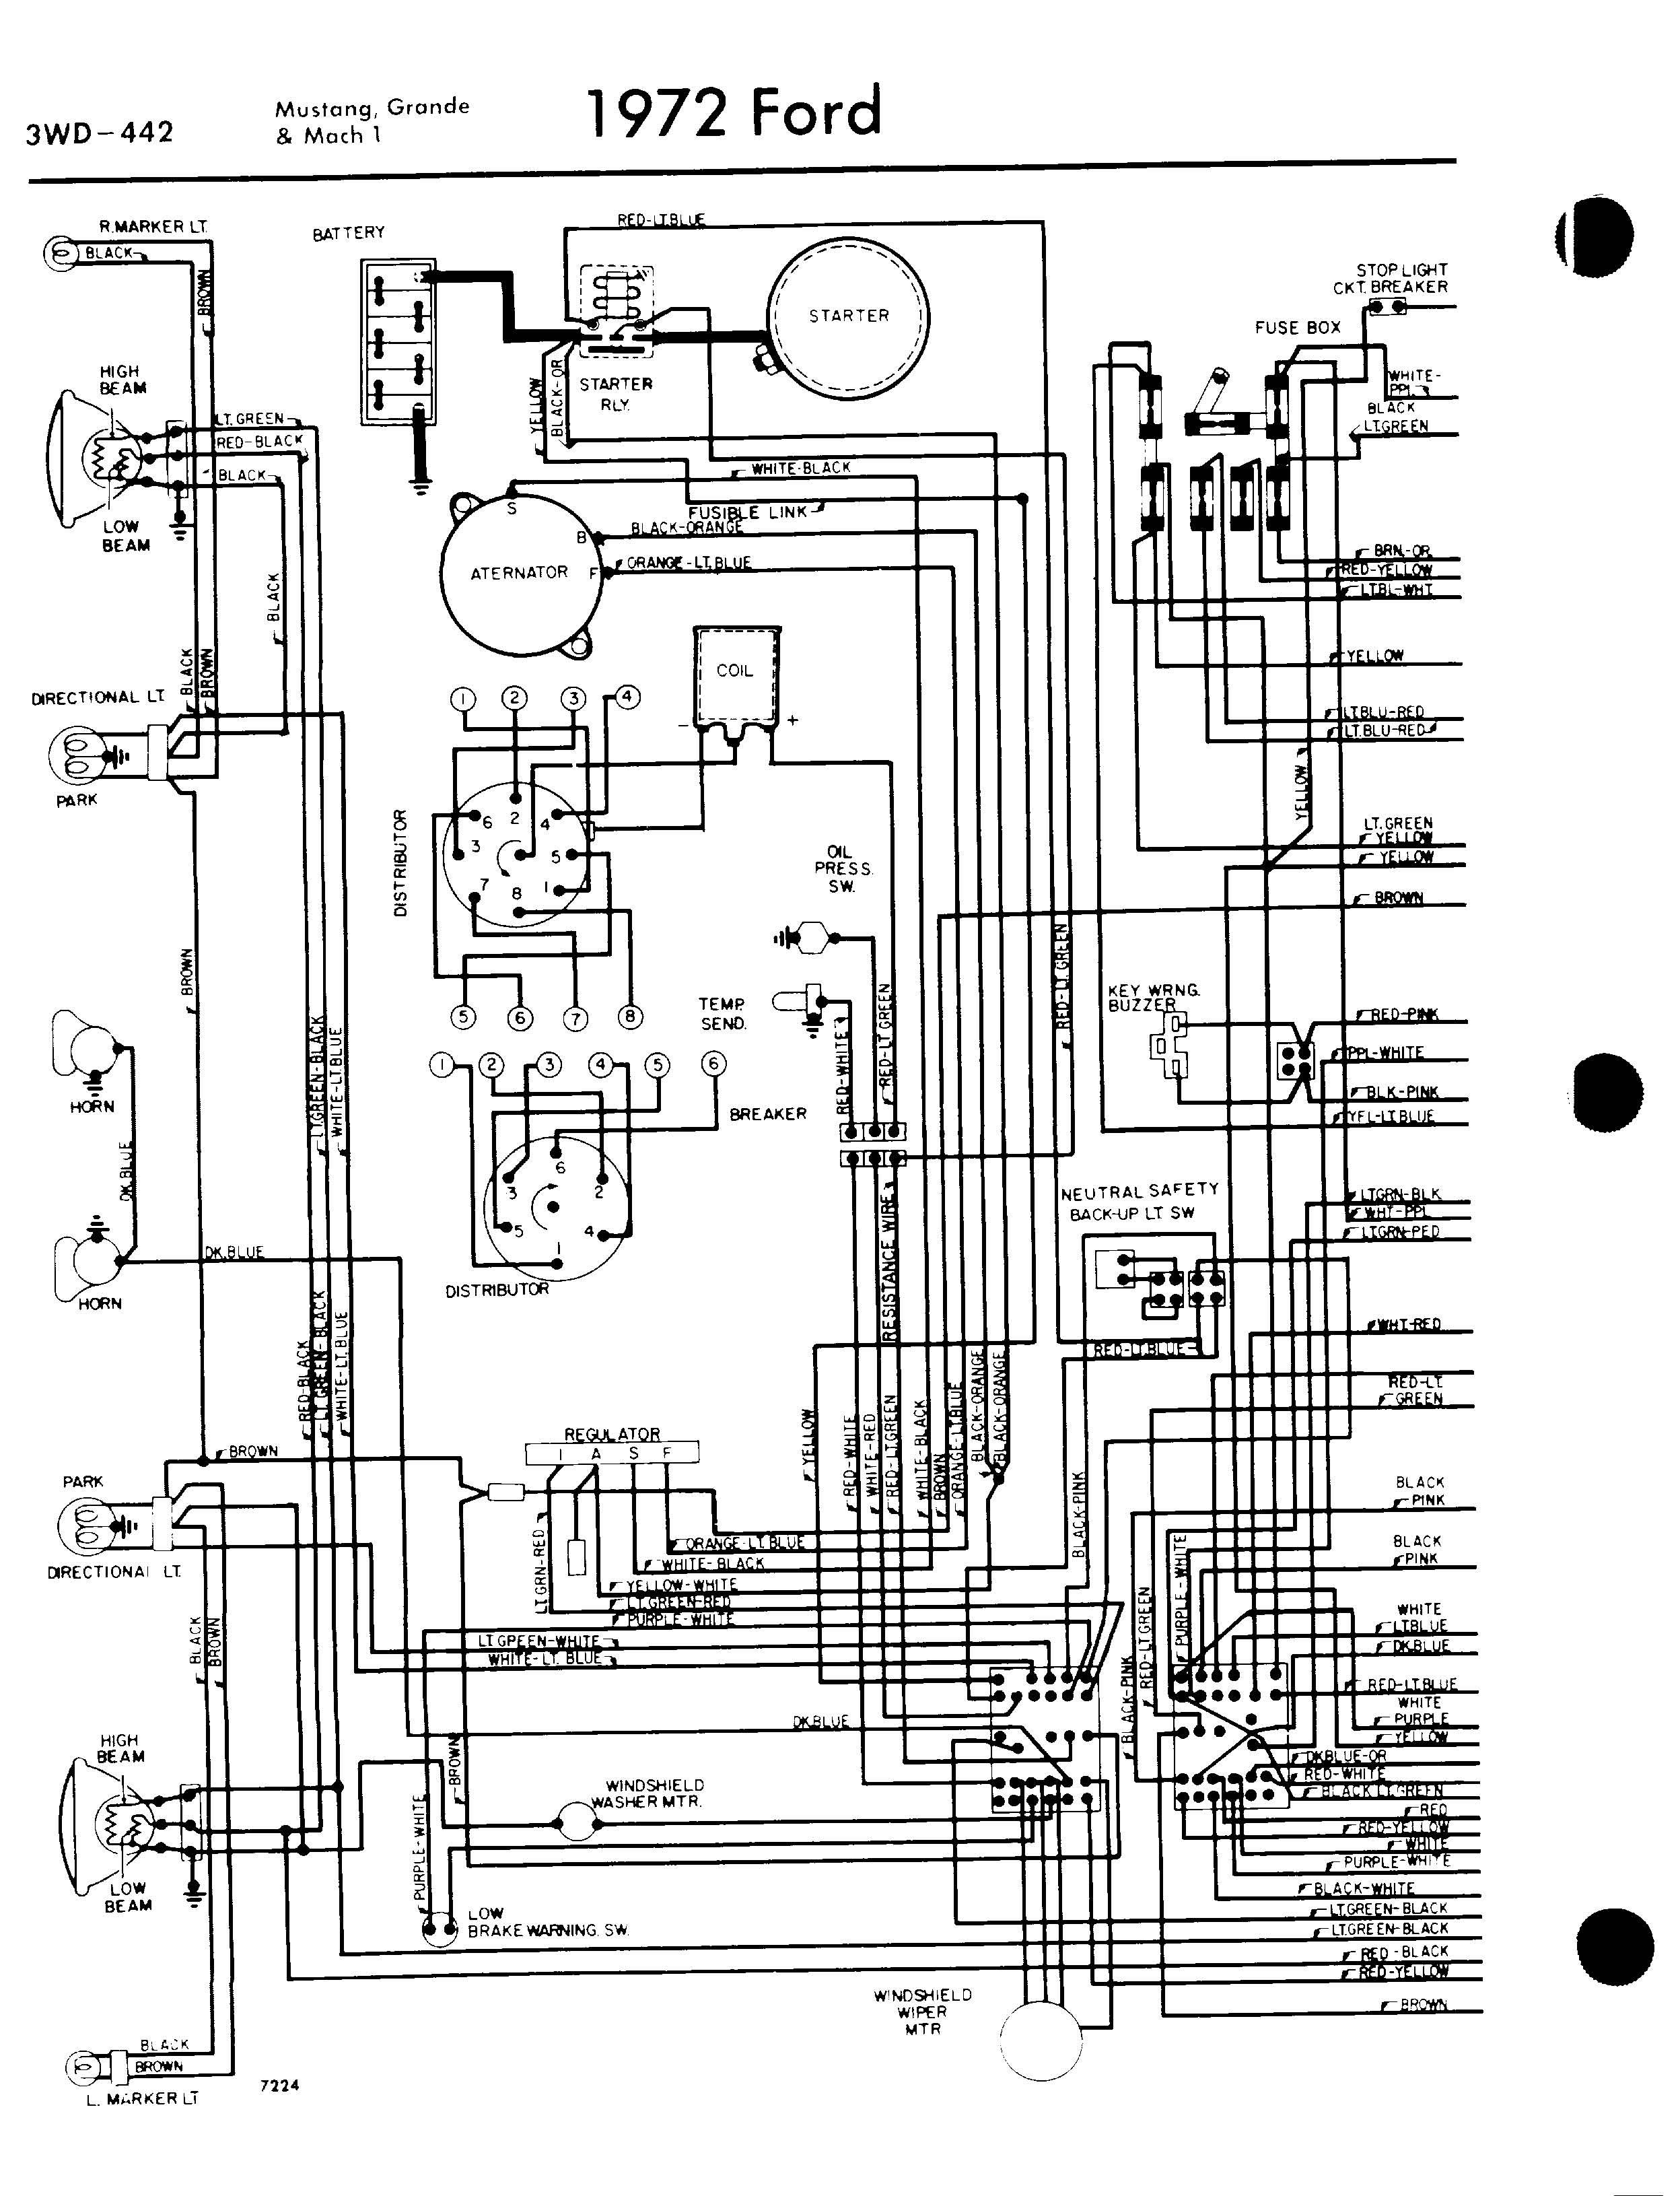 1969 cougar wiring diagram wiring diagram technicals 1969 cougar turn signal wiring schematics [ 2496 x 3262 Pixel ]